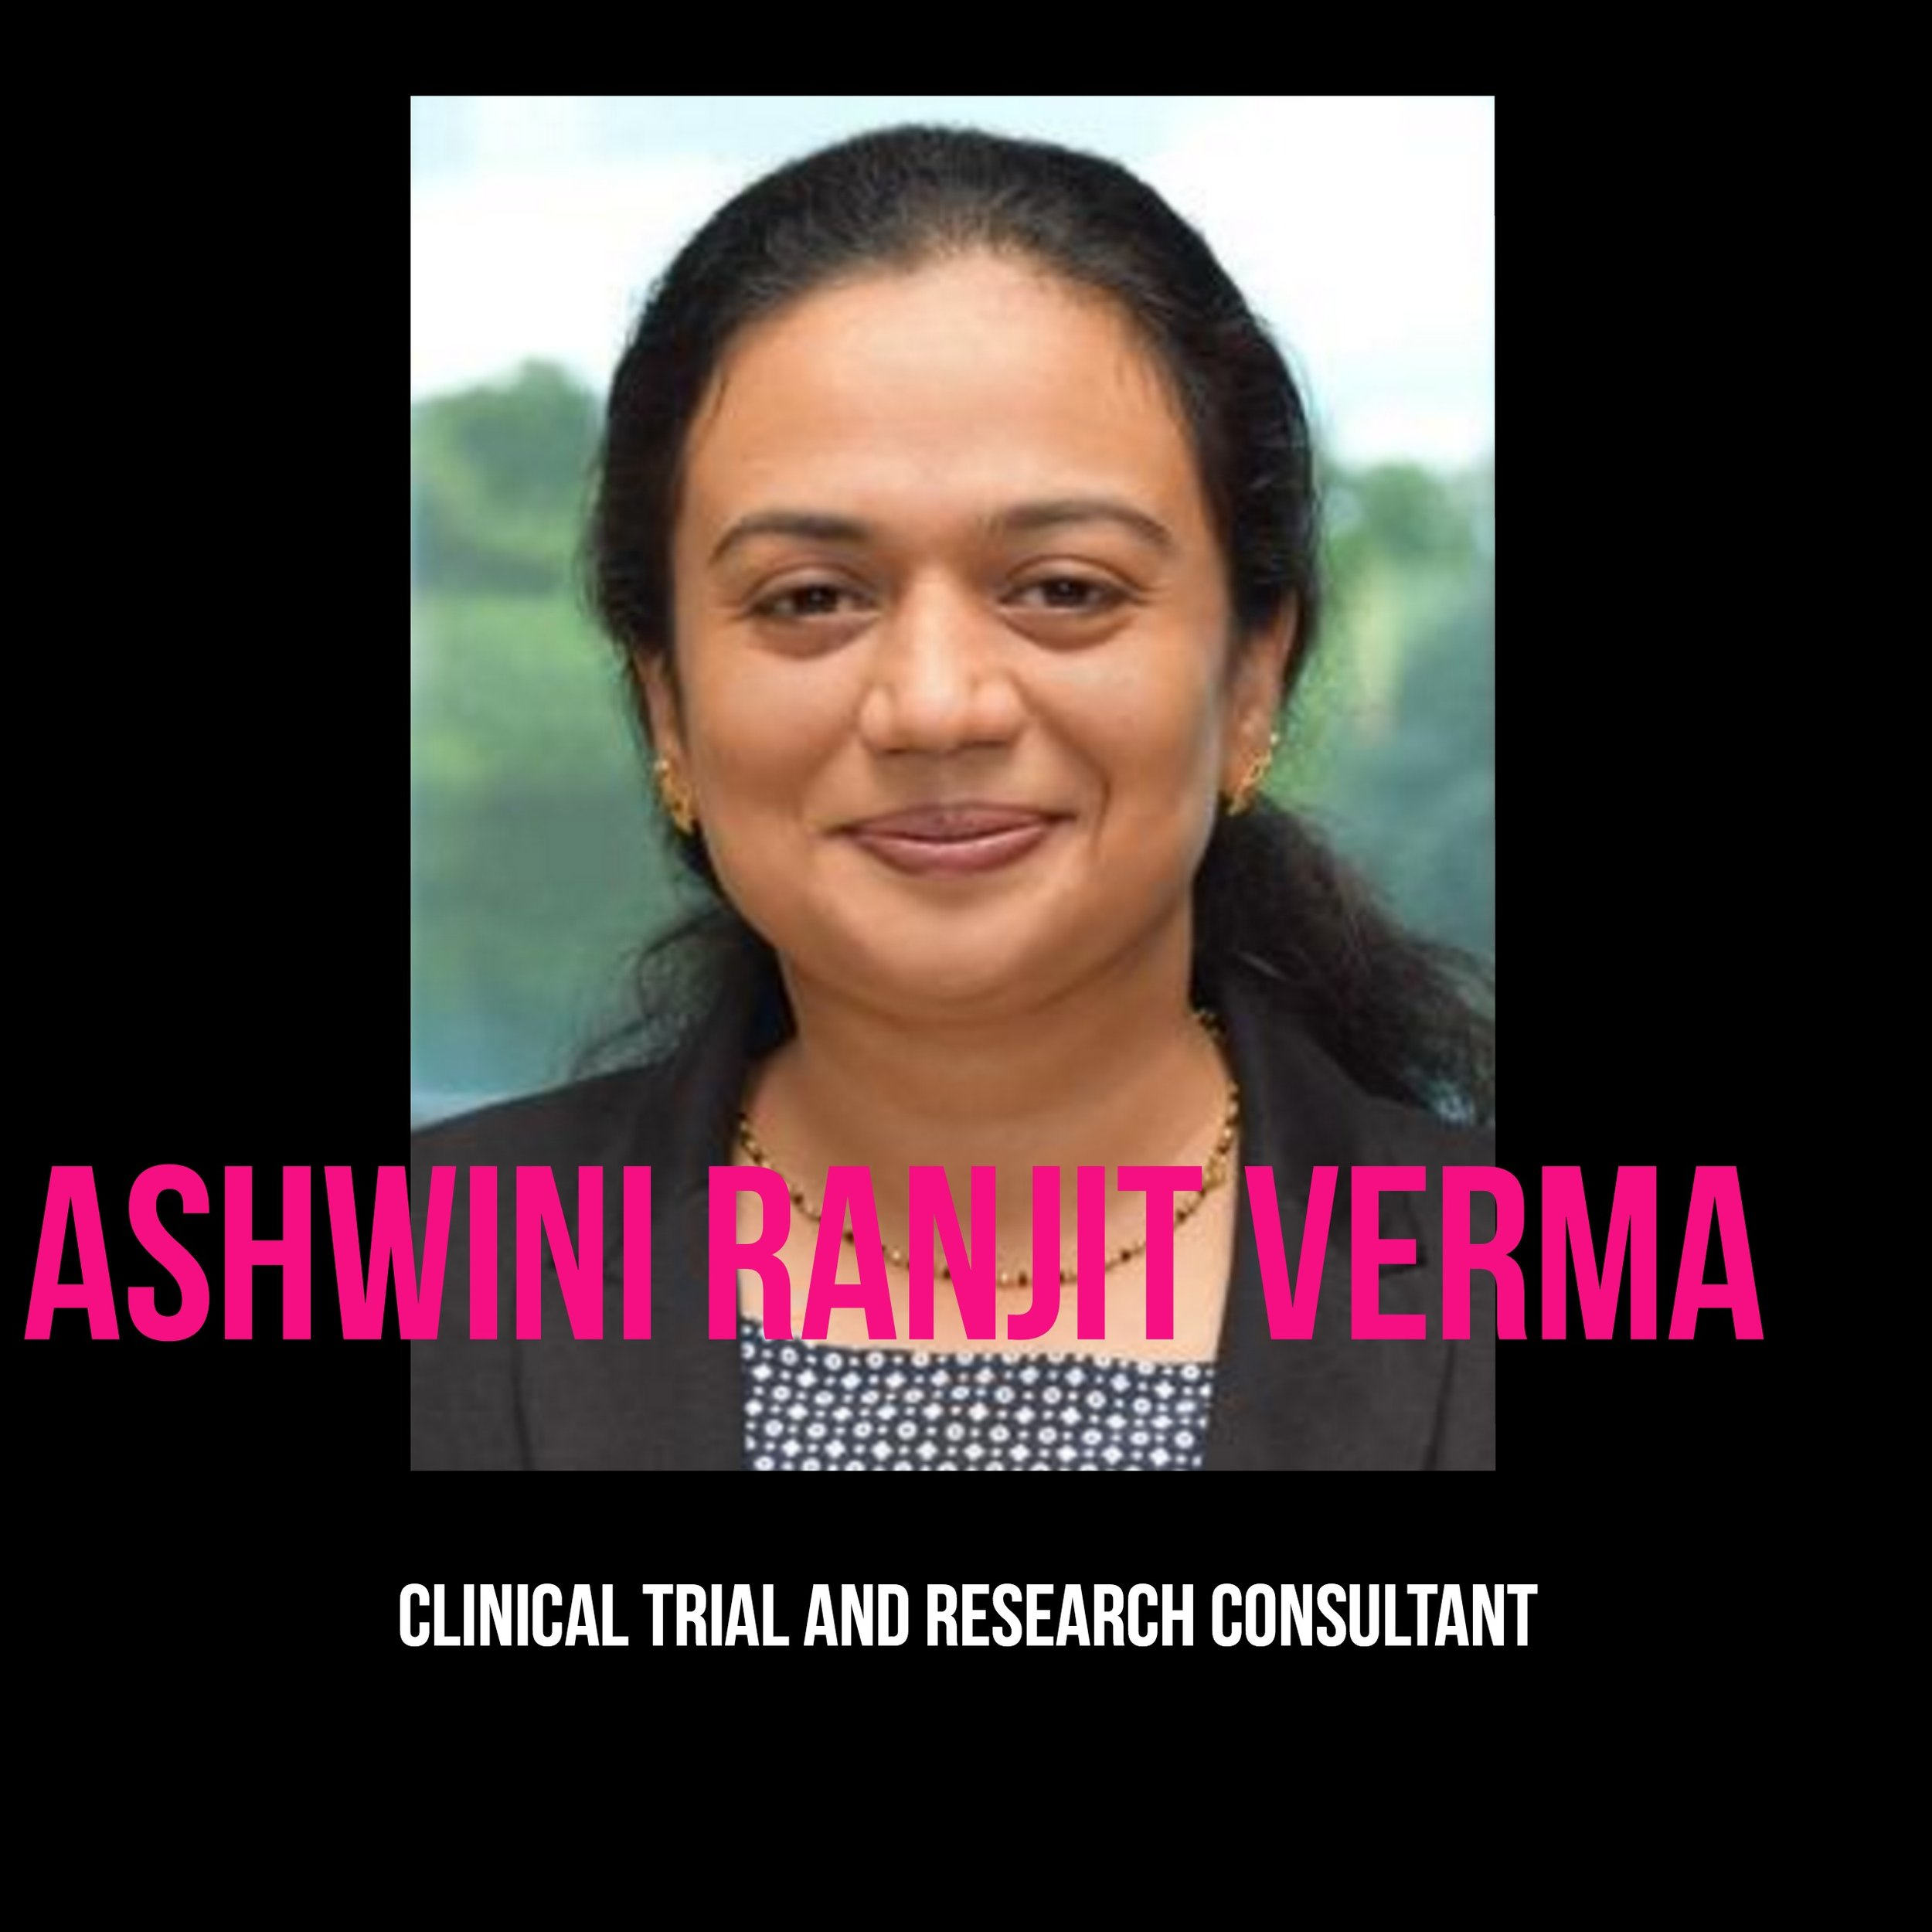 THE JILLS OF ALL TRADES - Ashwini Ranjit Verma Clinic Trial & Research Consultant